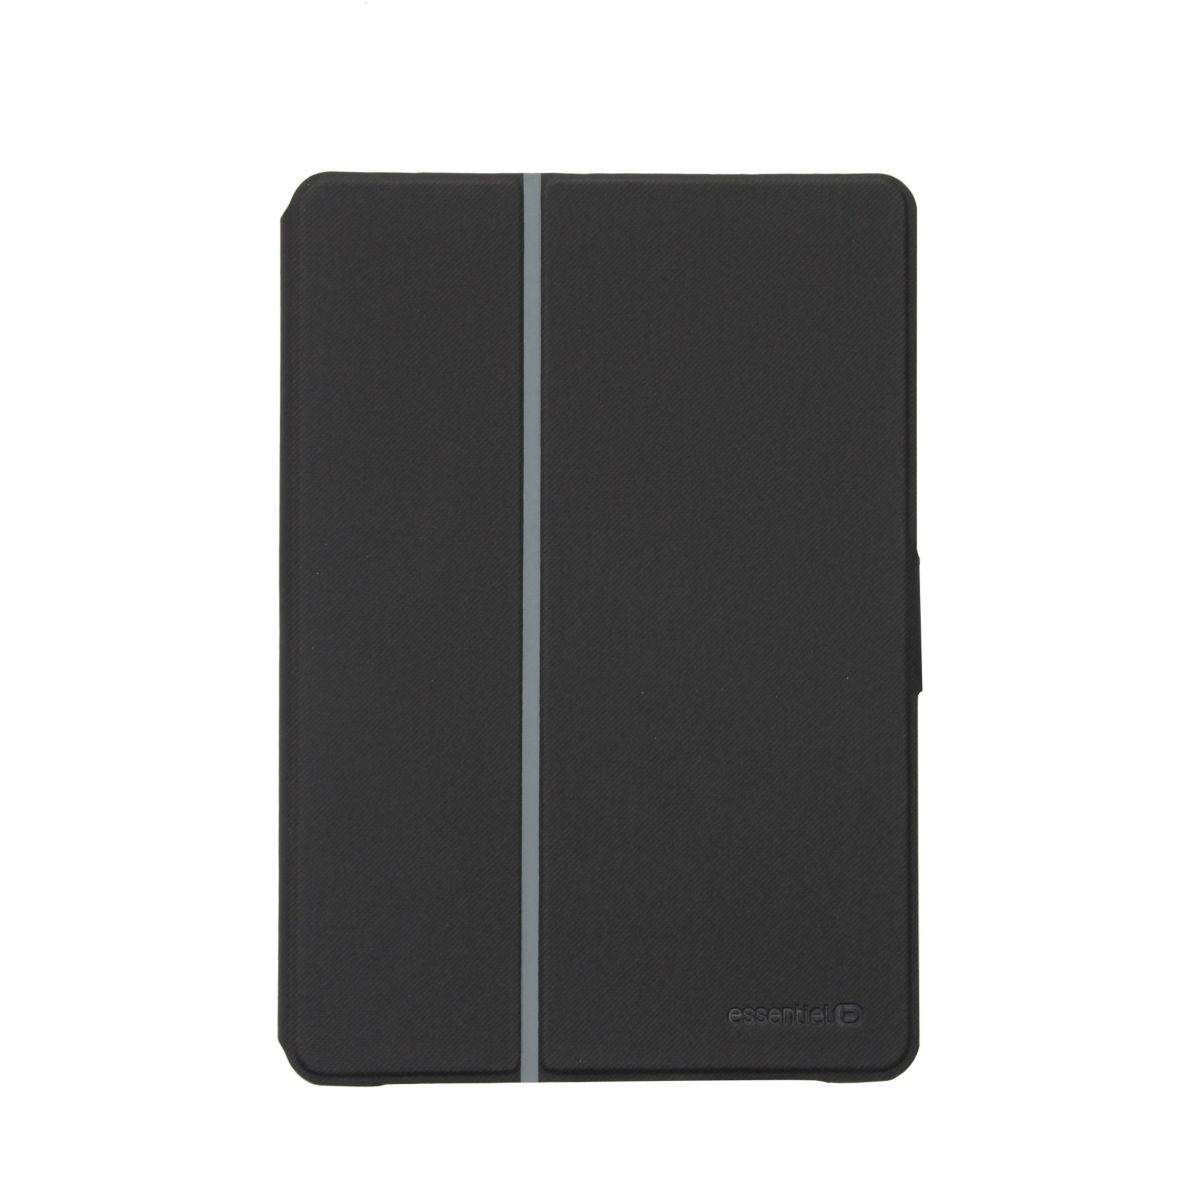 Etui ESSENTIELB rotatif iPad Air 2 noir (photo)